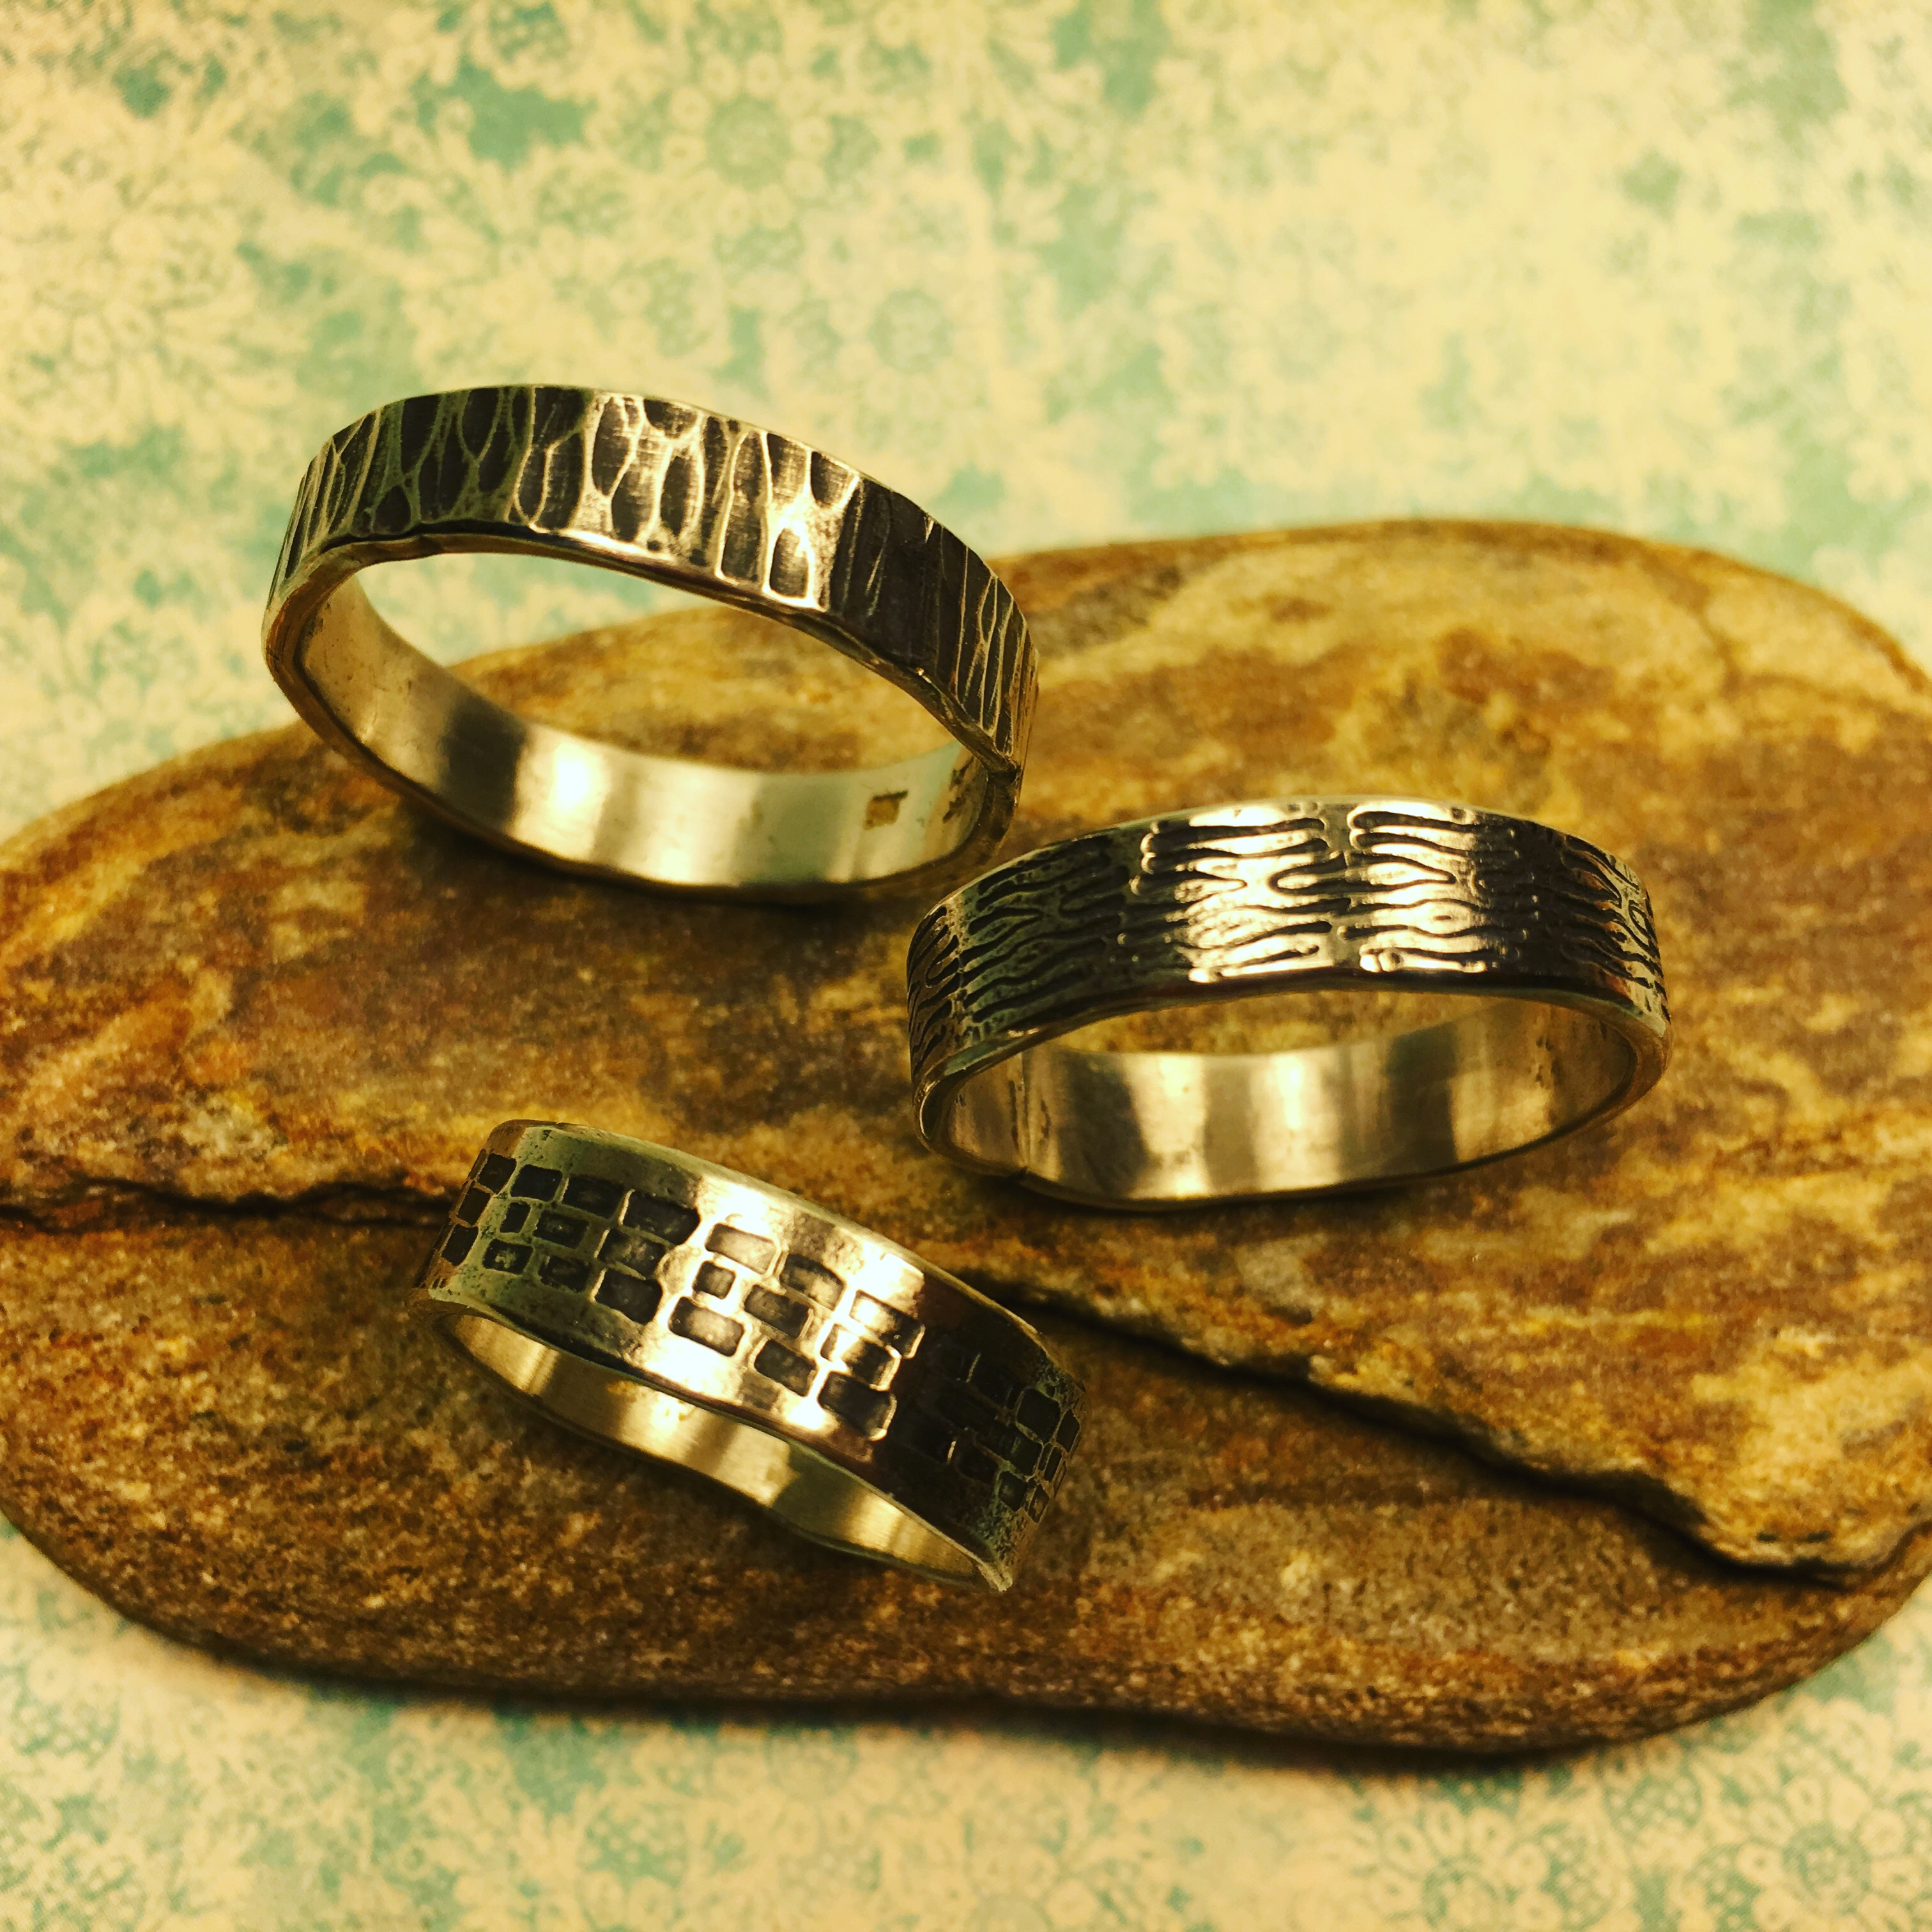 10, 7 & 5 mm silver bands